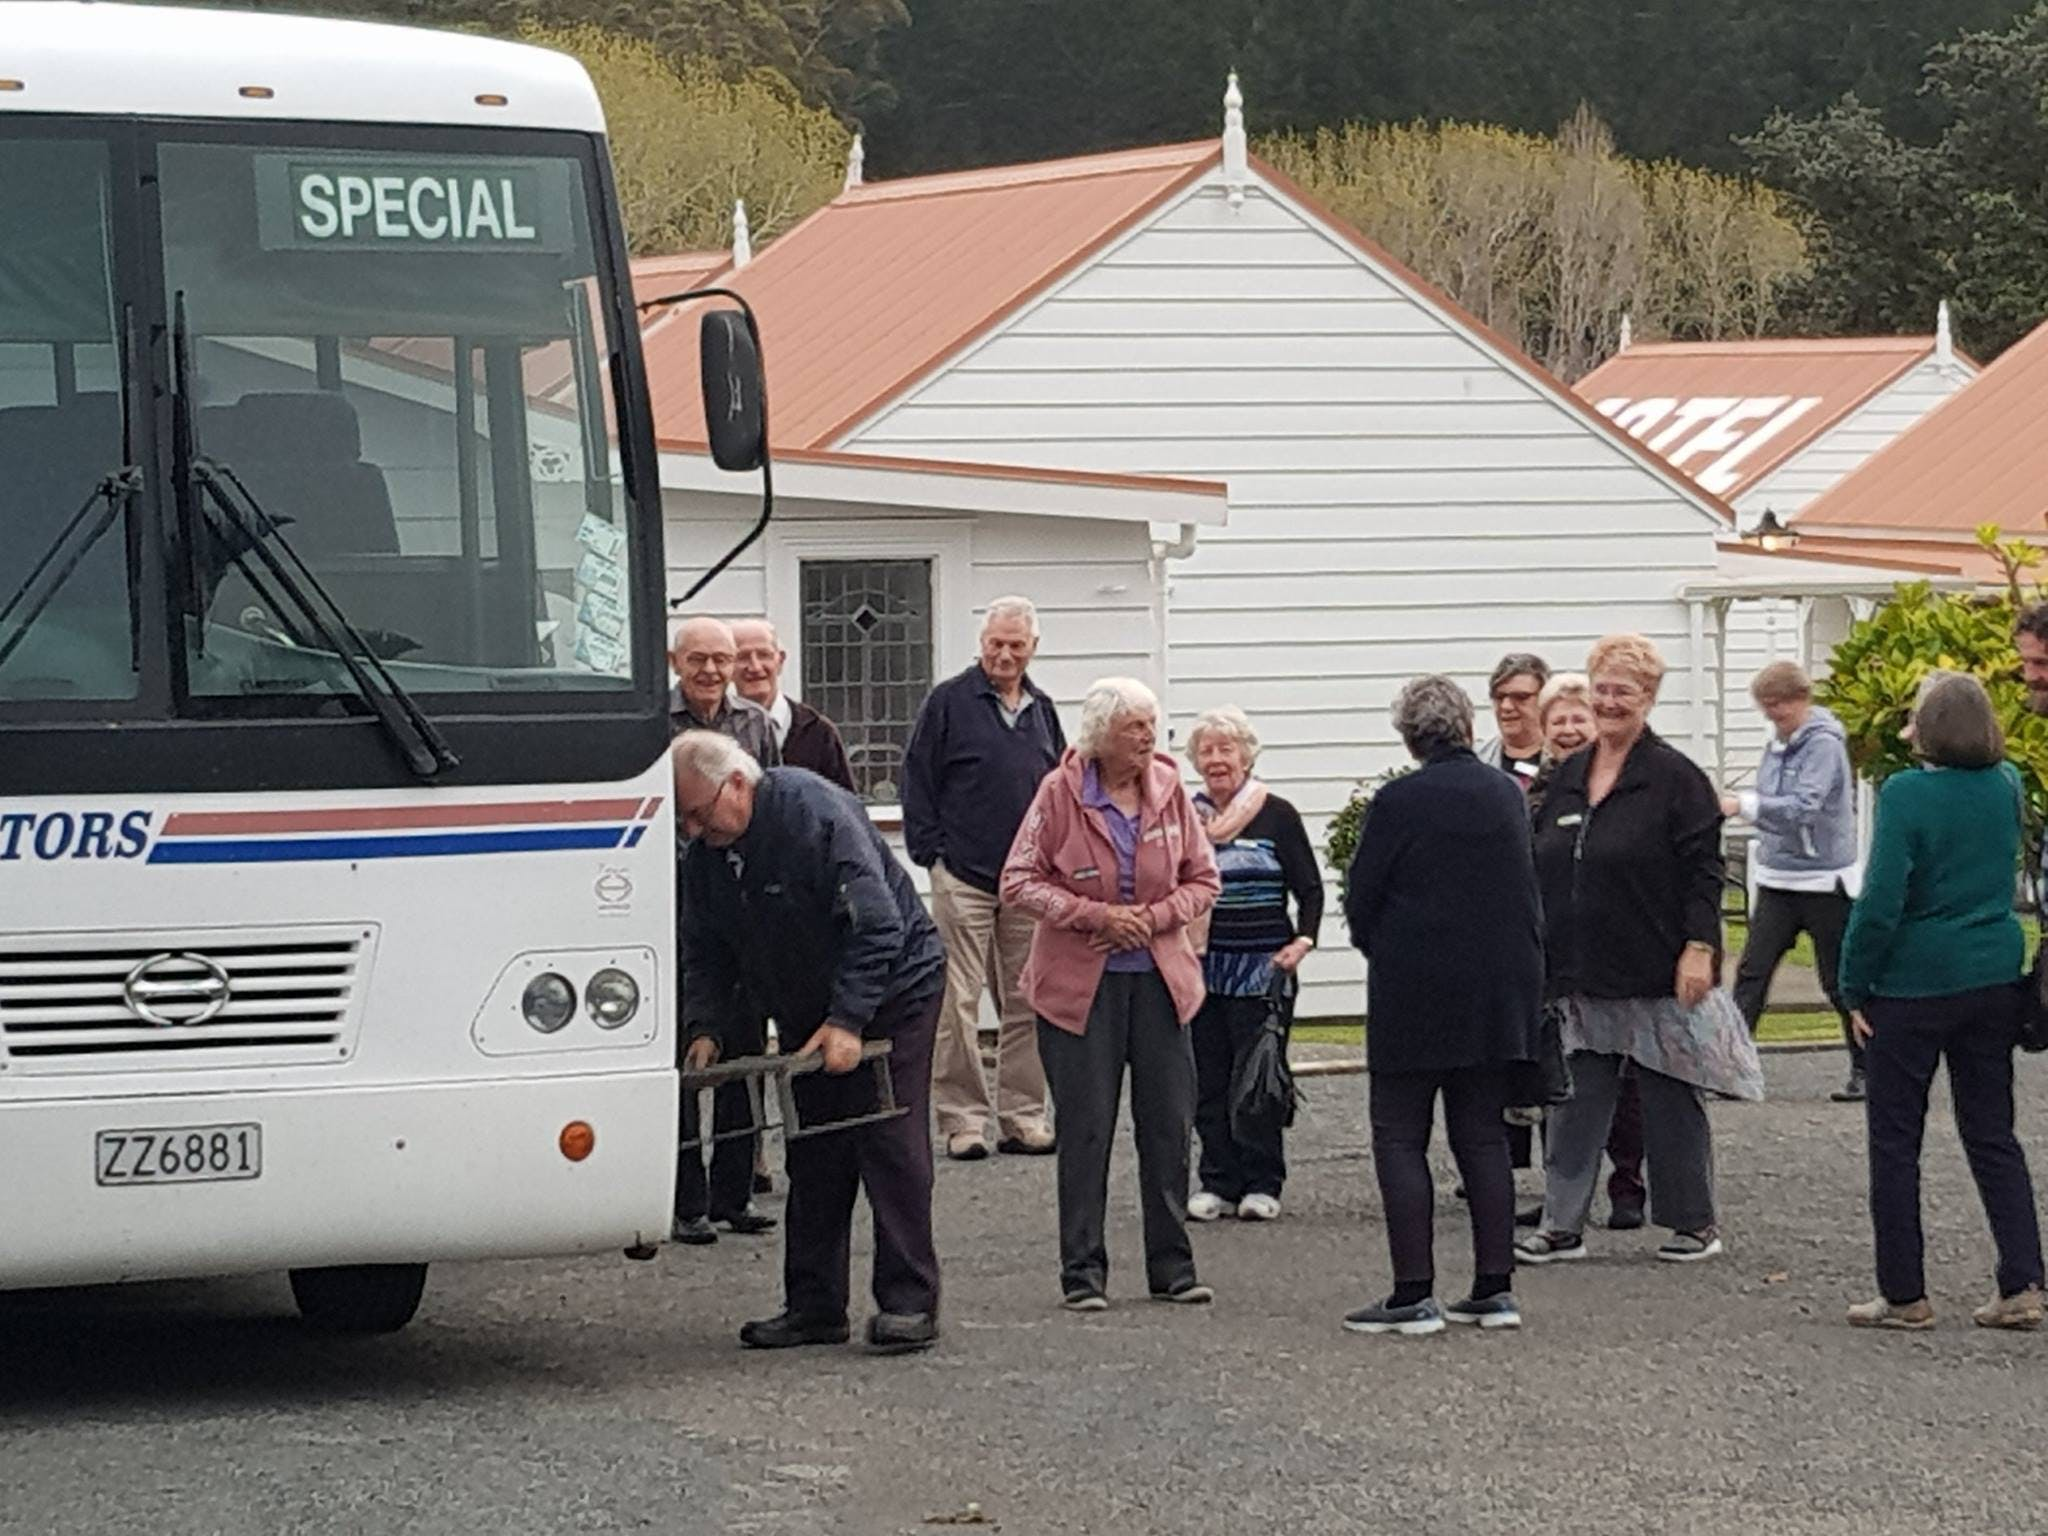 Guests traveling around in a big Bus